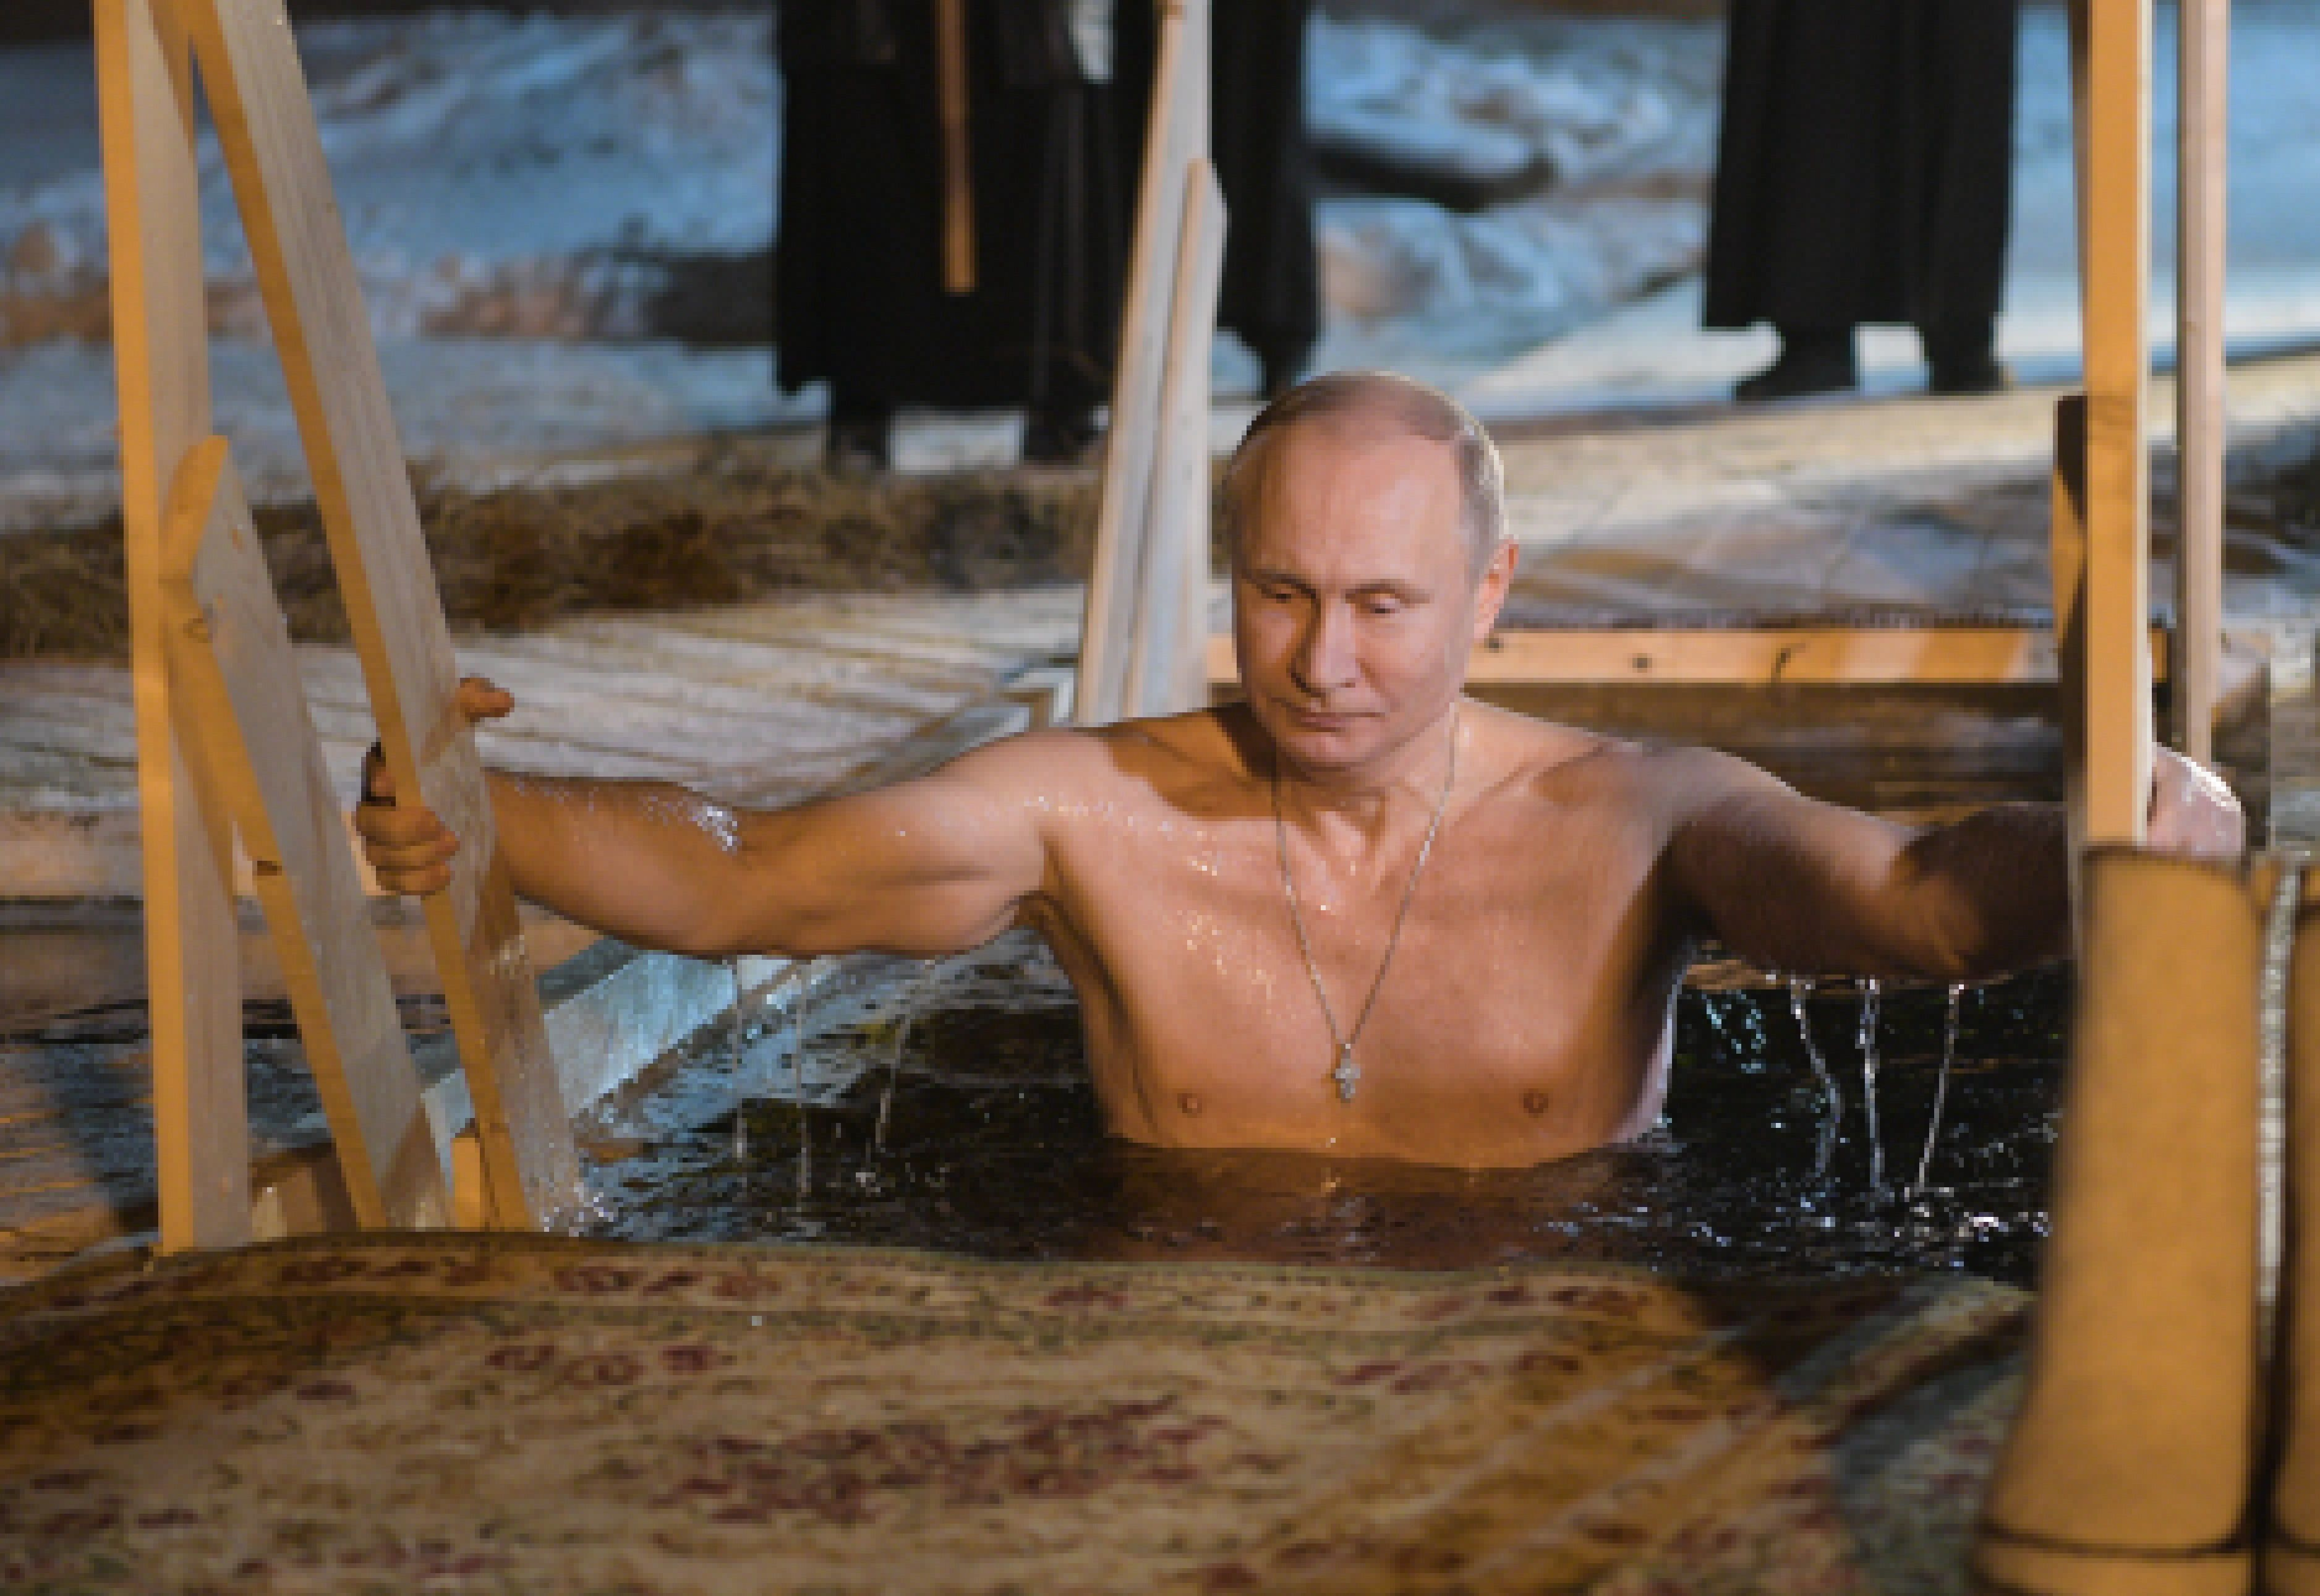 TVER REGION, RUSSIA - JANUARY 19, 2018: Russia's President Vladimir Putin dips in the icy waters of Lake Seliger during the celebration of Epiphany. In Eastern Christianity, the feast of Epiphany commemorates the Baptism of Jesus. The Russian Orthodox Church celebrates the holiday according to the Julian calendar. Alexei Druzhinin/Russian Presidential Press and Information Office/TASS (Photo by Alexei Druzhinin\TASS via Getty Images)